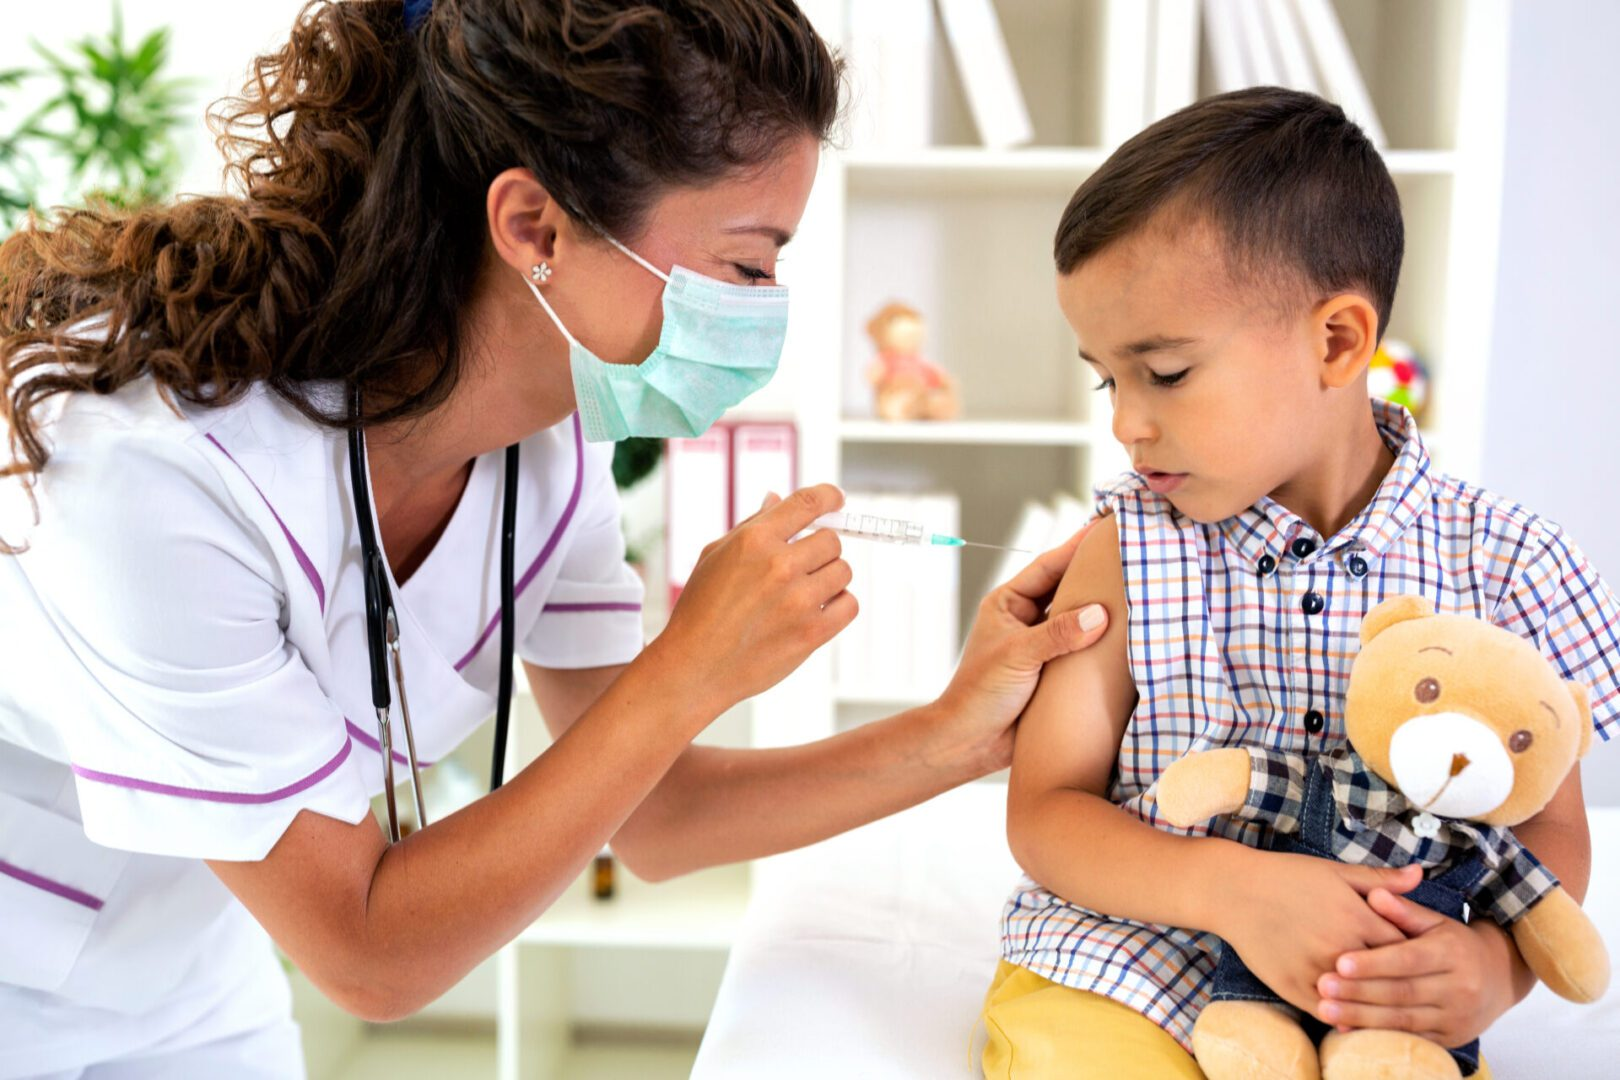 A,Boy,Taking,A,Vaccine,Shot,With,No,Fear,In